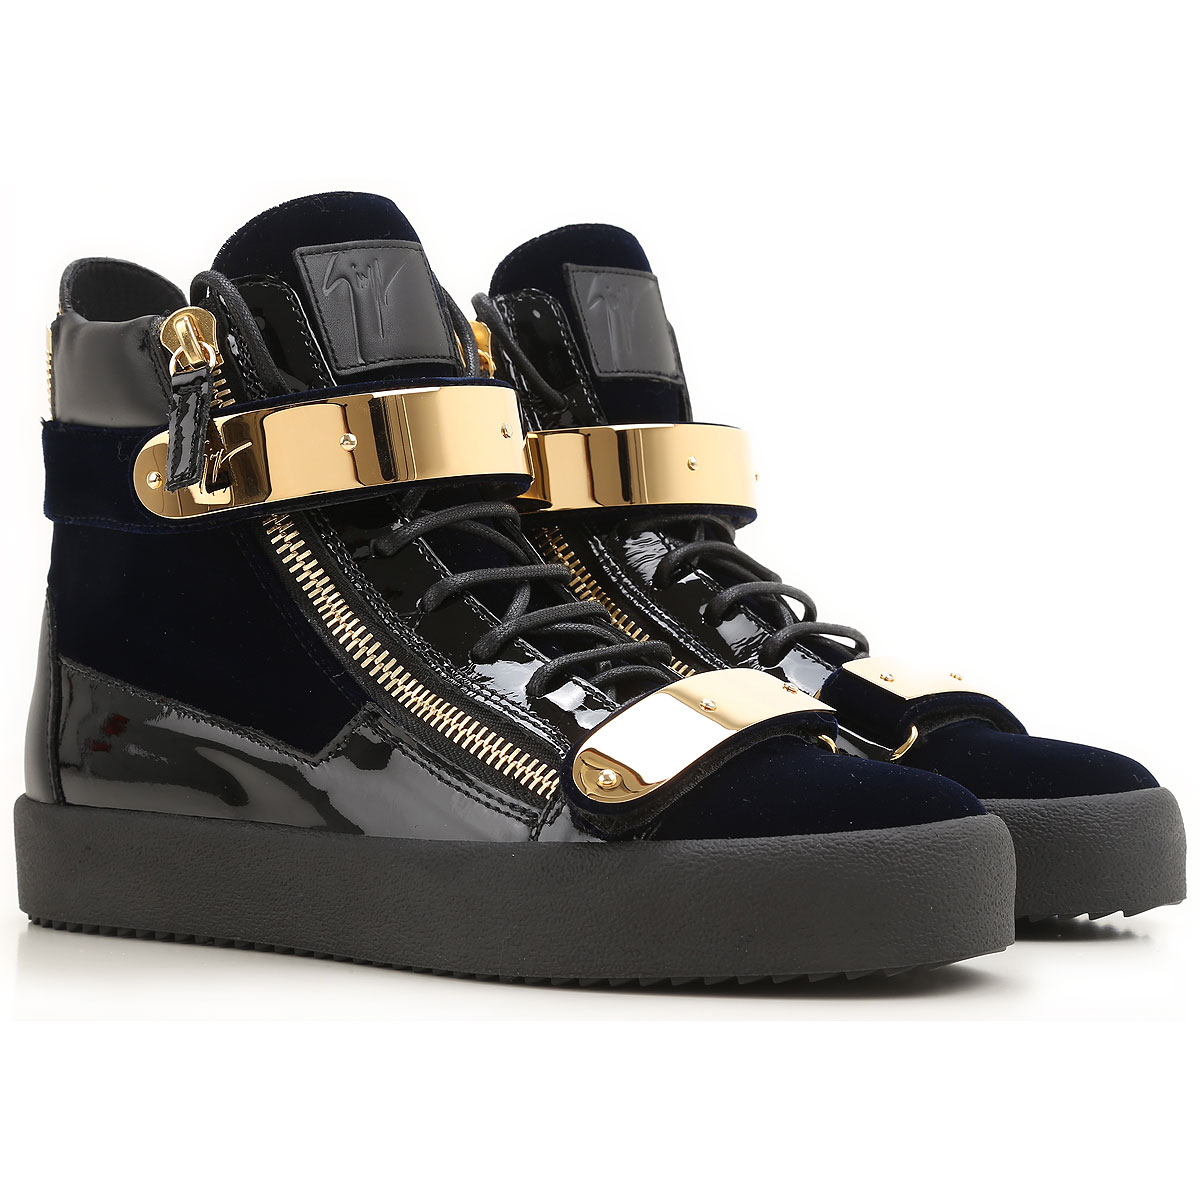 chaussures homme giuseppe zanotti design code produit rm7028 001 navy. Black Bedroom Furniture Sets. Home Design Ideas